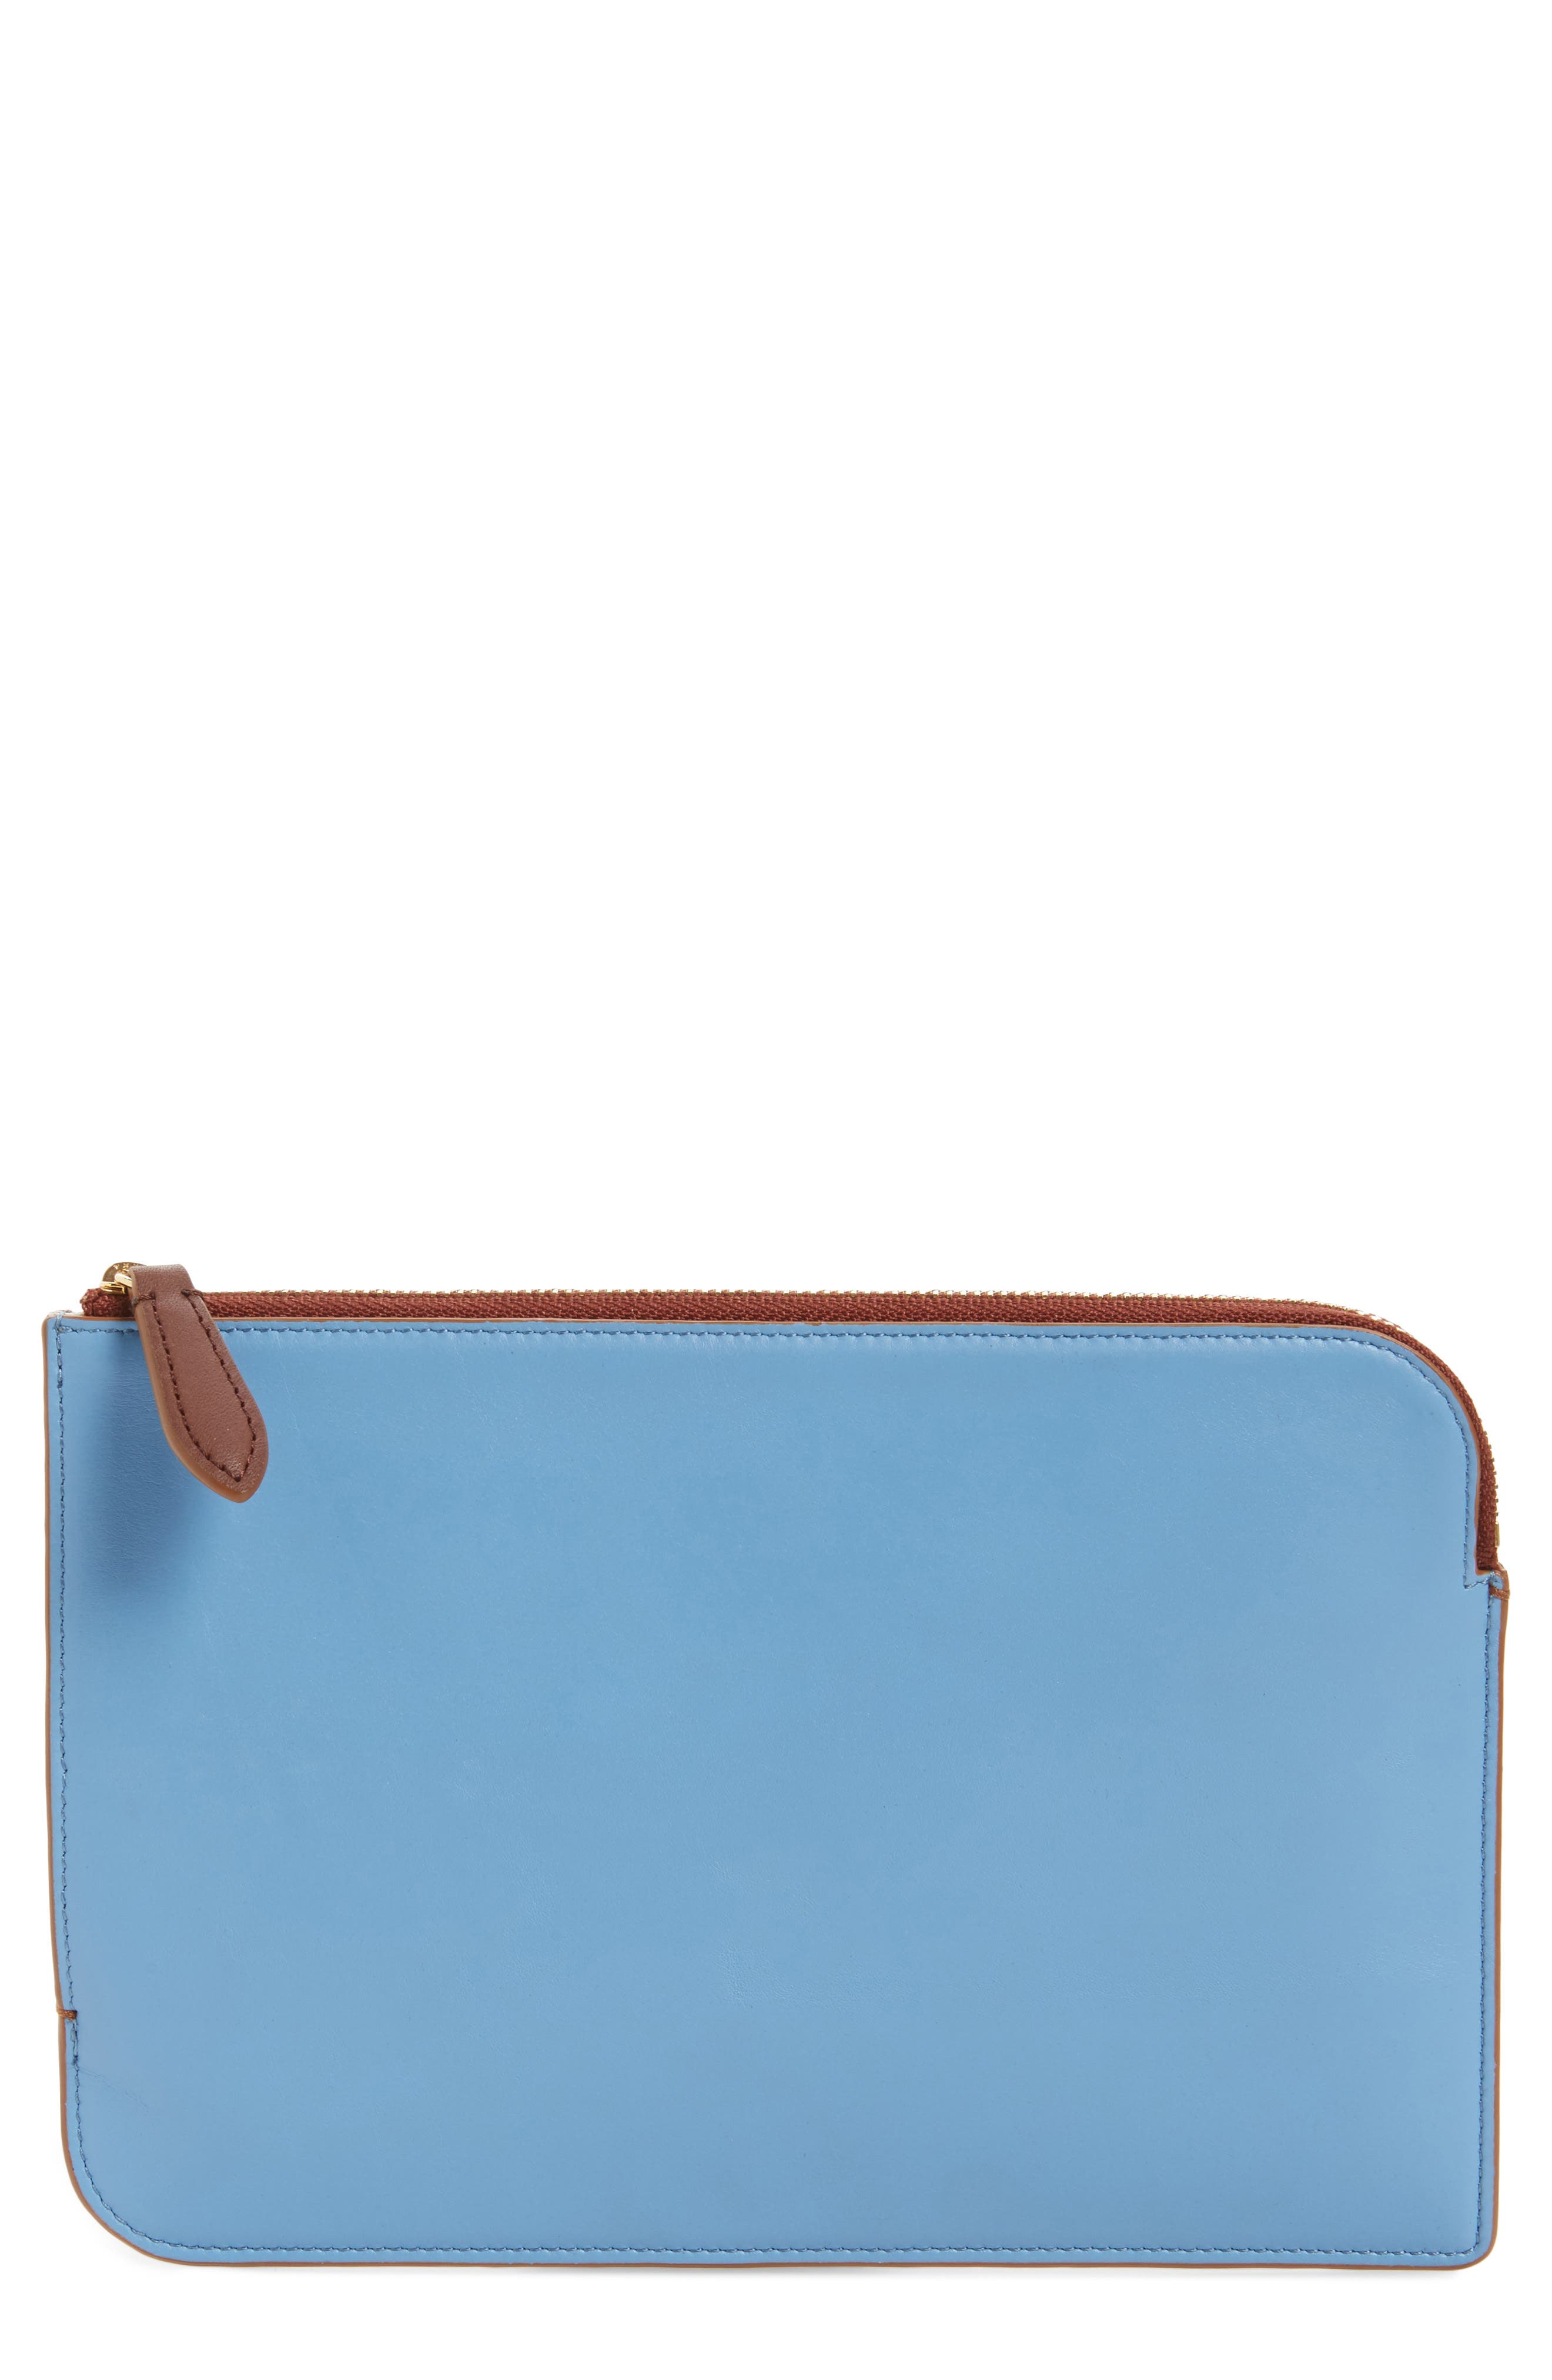 Medium Leather Zip Pouch,                             Main thumbnail 1, color,                             Powder Blue/ Dusty Pink